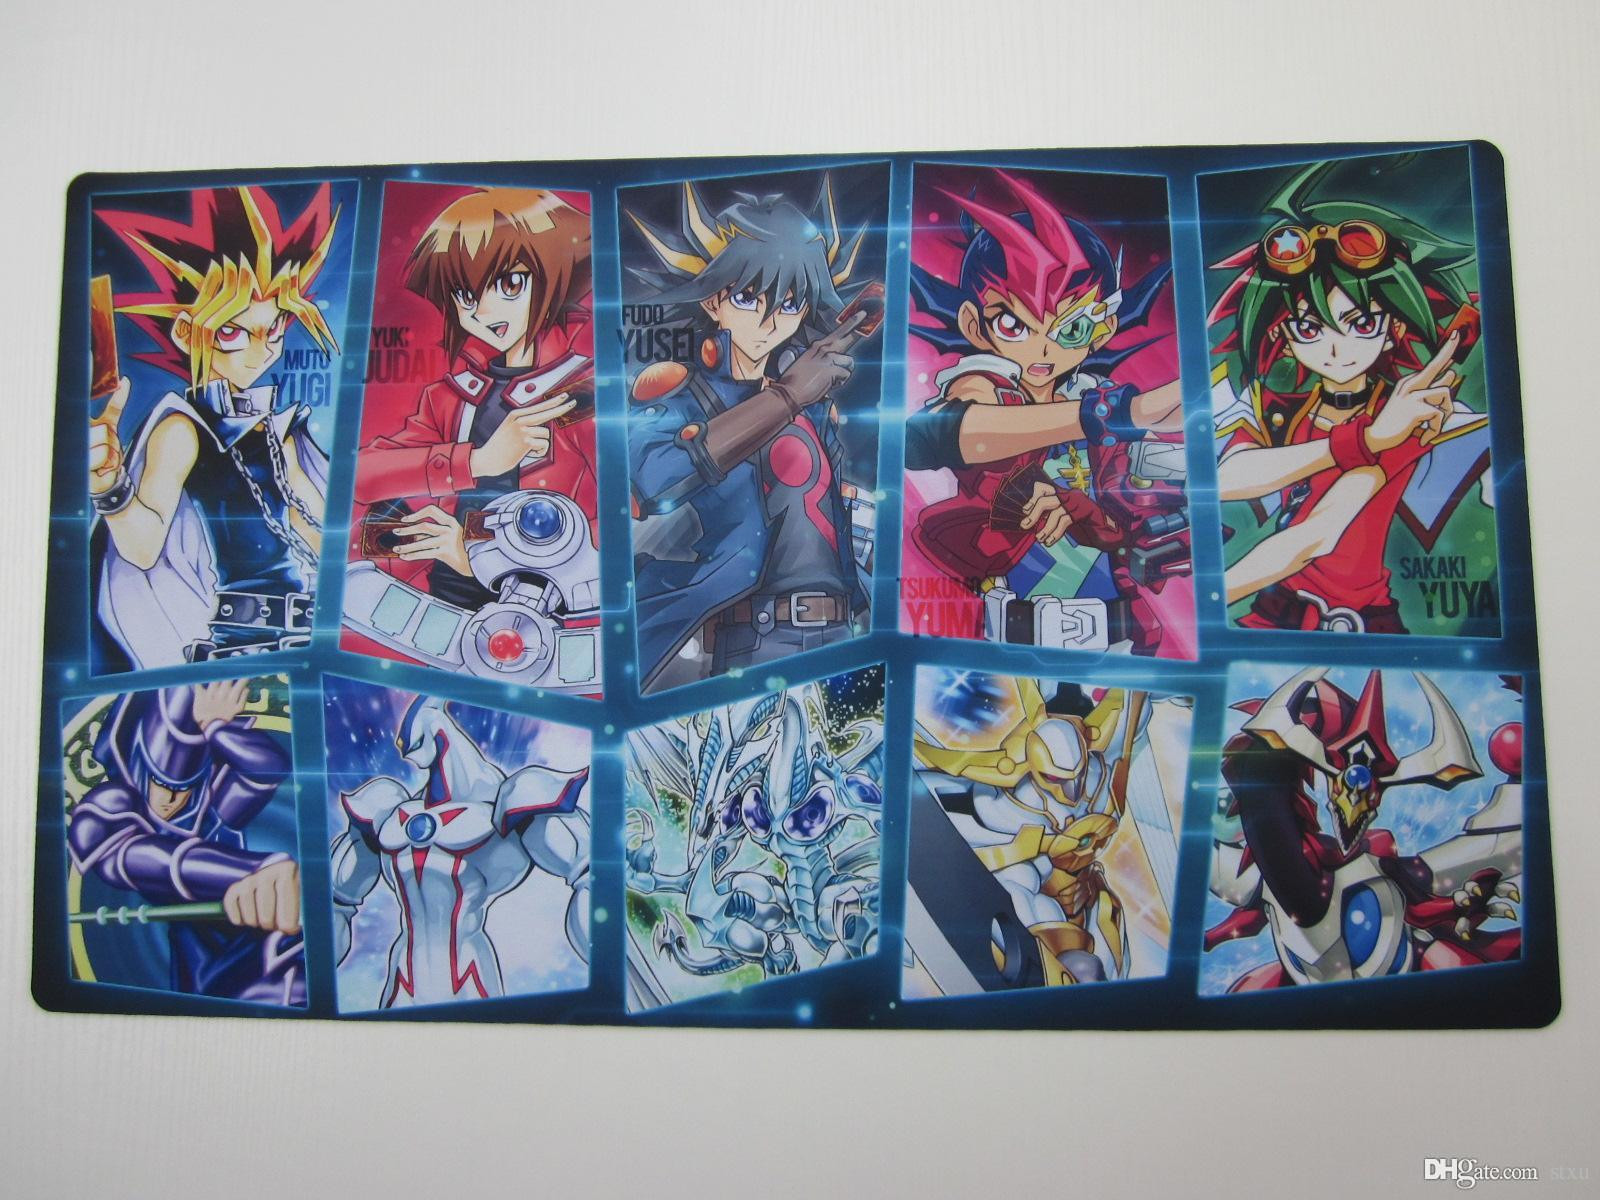 wholesale free yugioh cards cheap free yugioh cards from